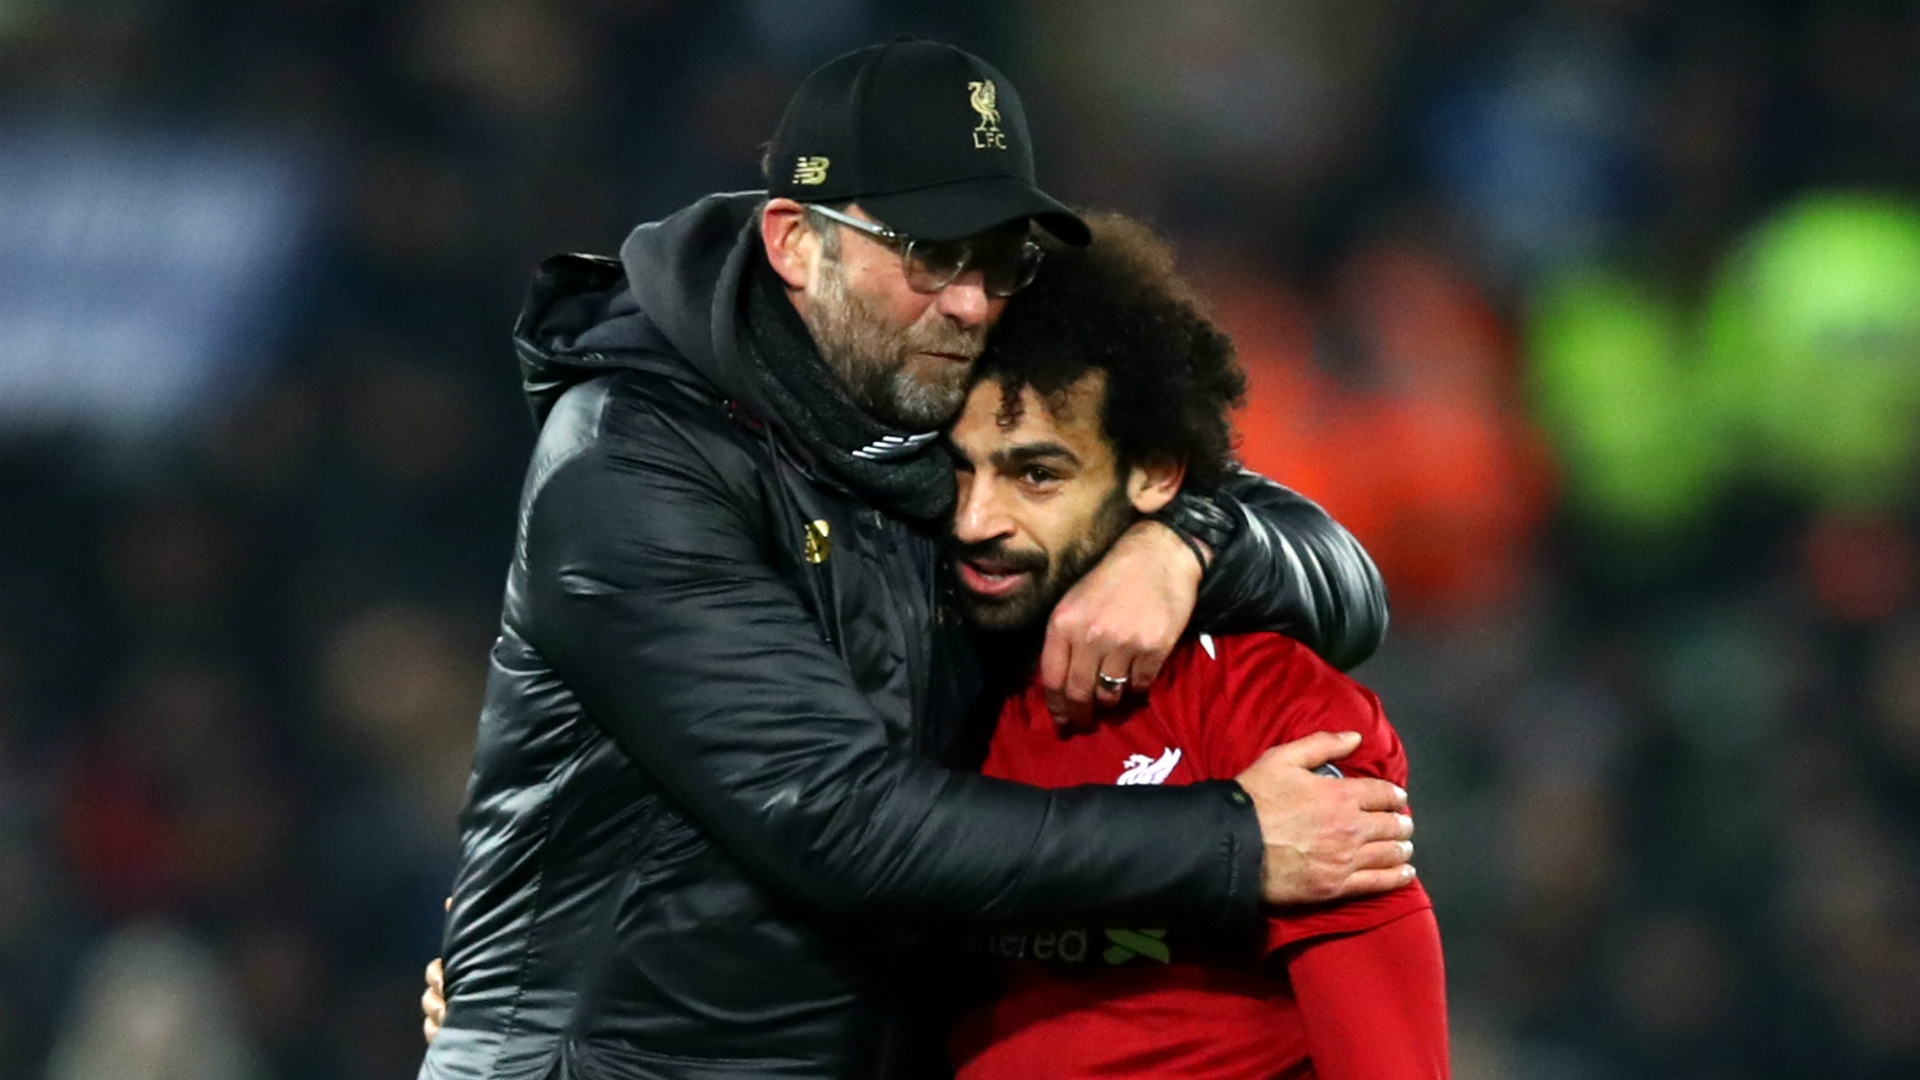 Jurgen Klopp and Mohamed Salah (Liverpool)